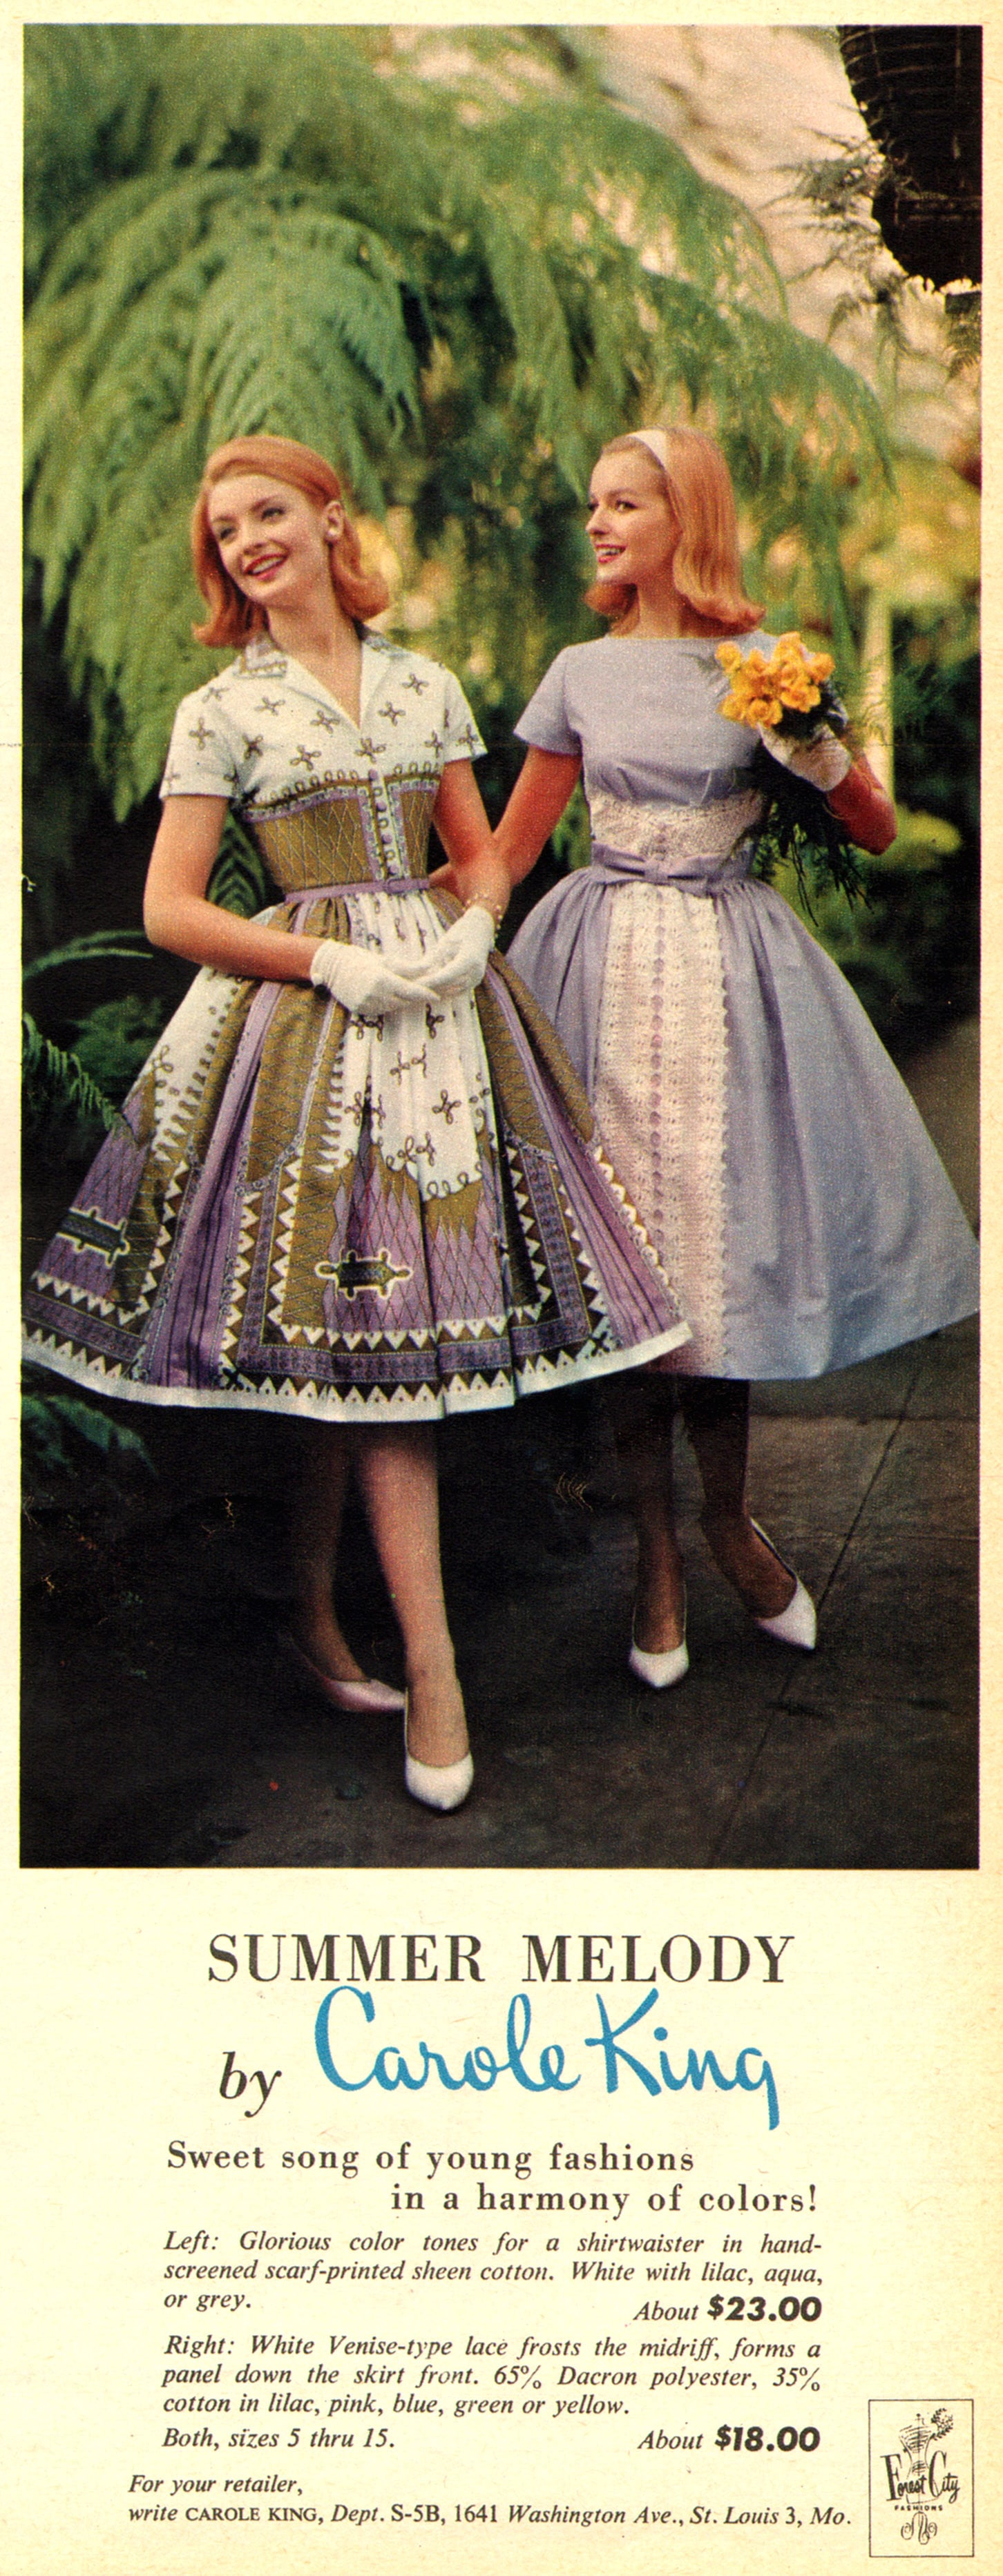 """Wear a dress this Summer with a """"harmony of colors."""""""